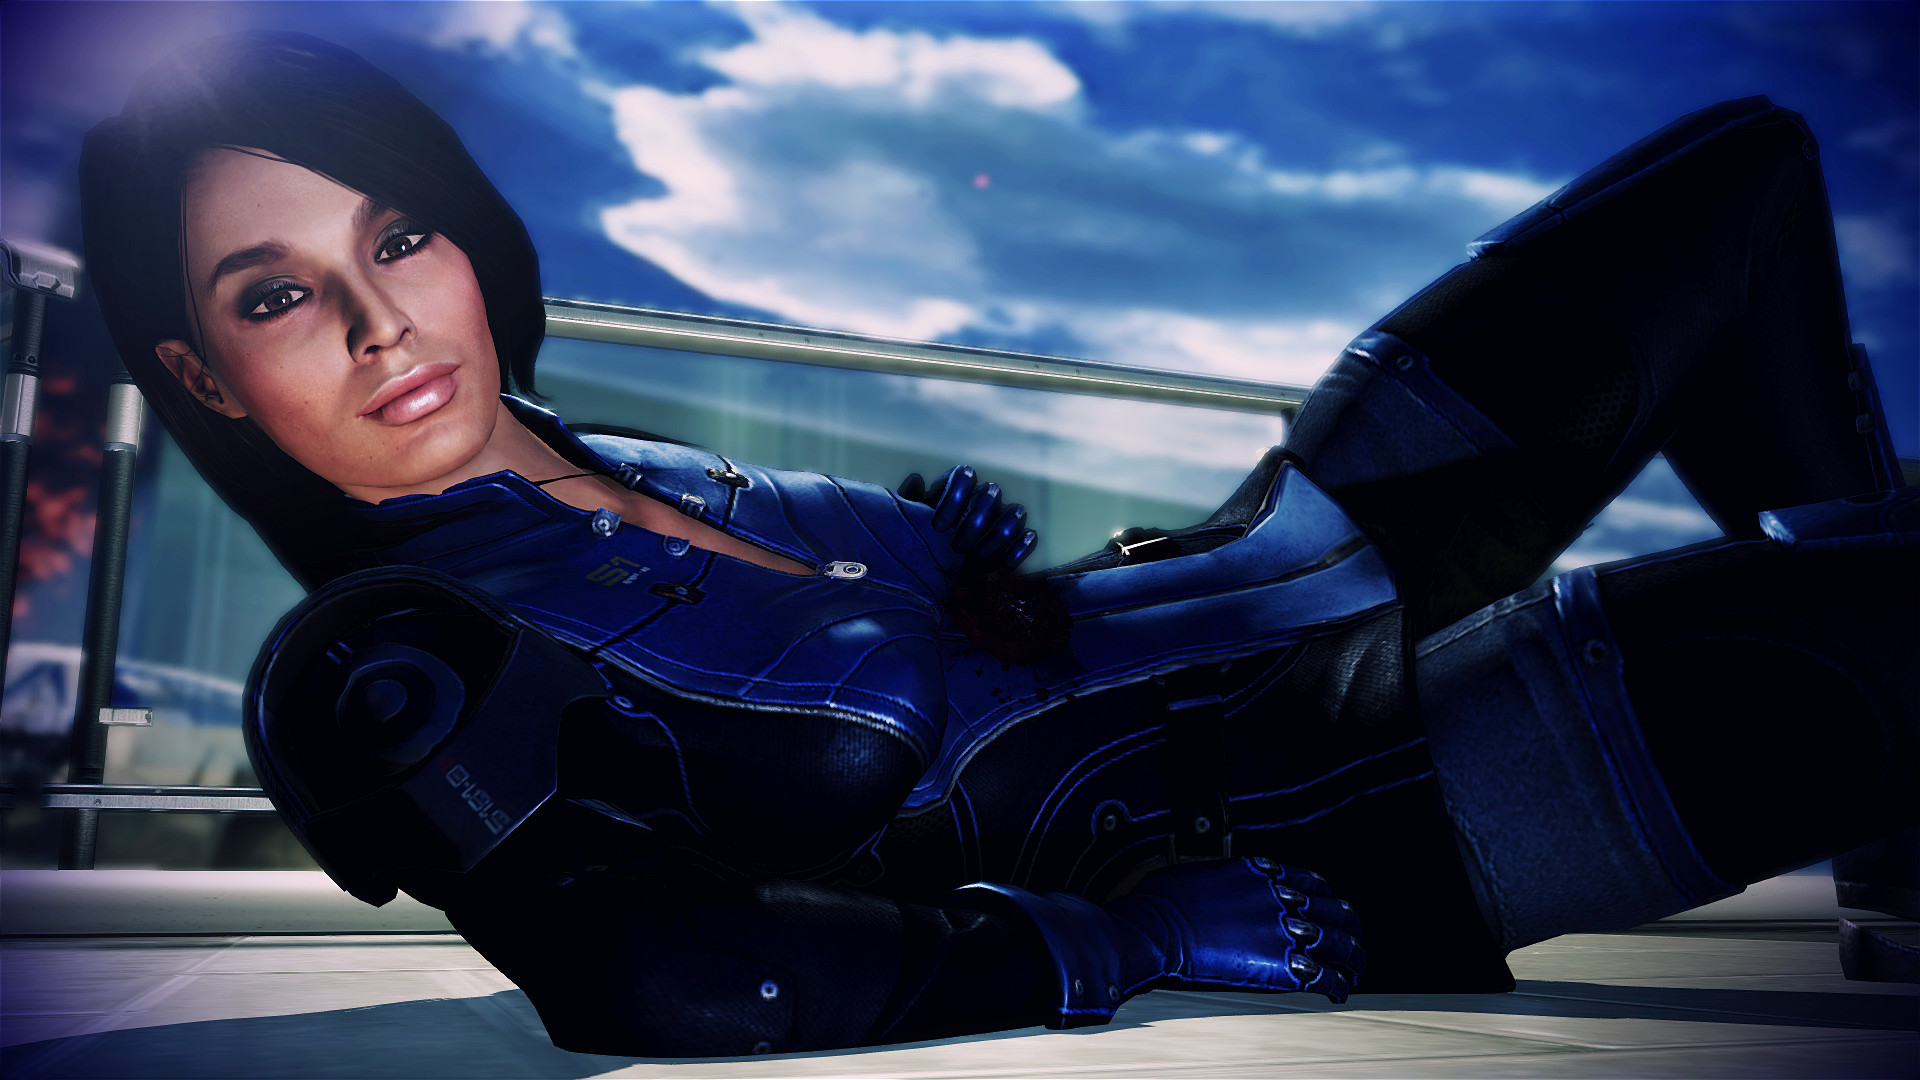 Mass effect 3 ashley williams sex cartoon softcore images